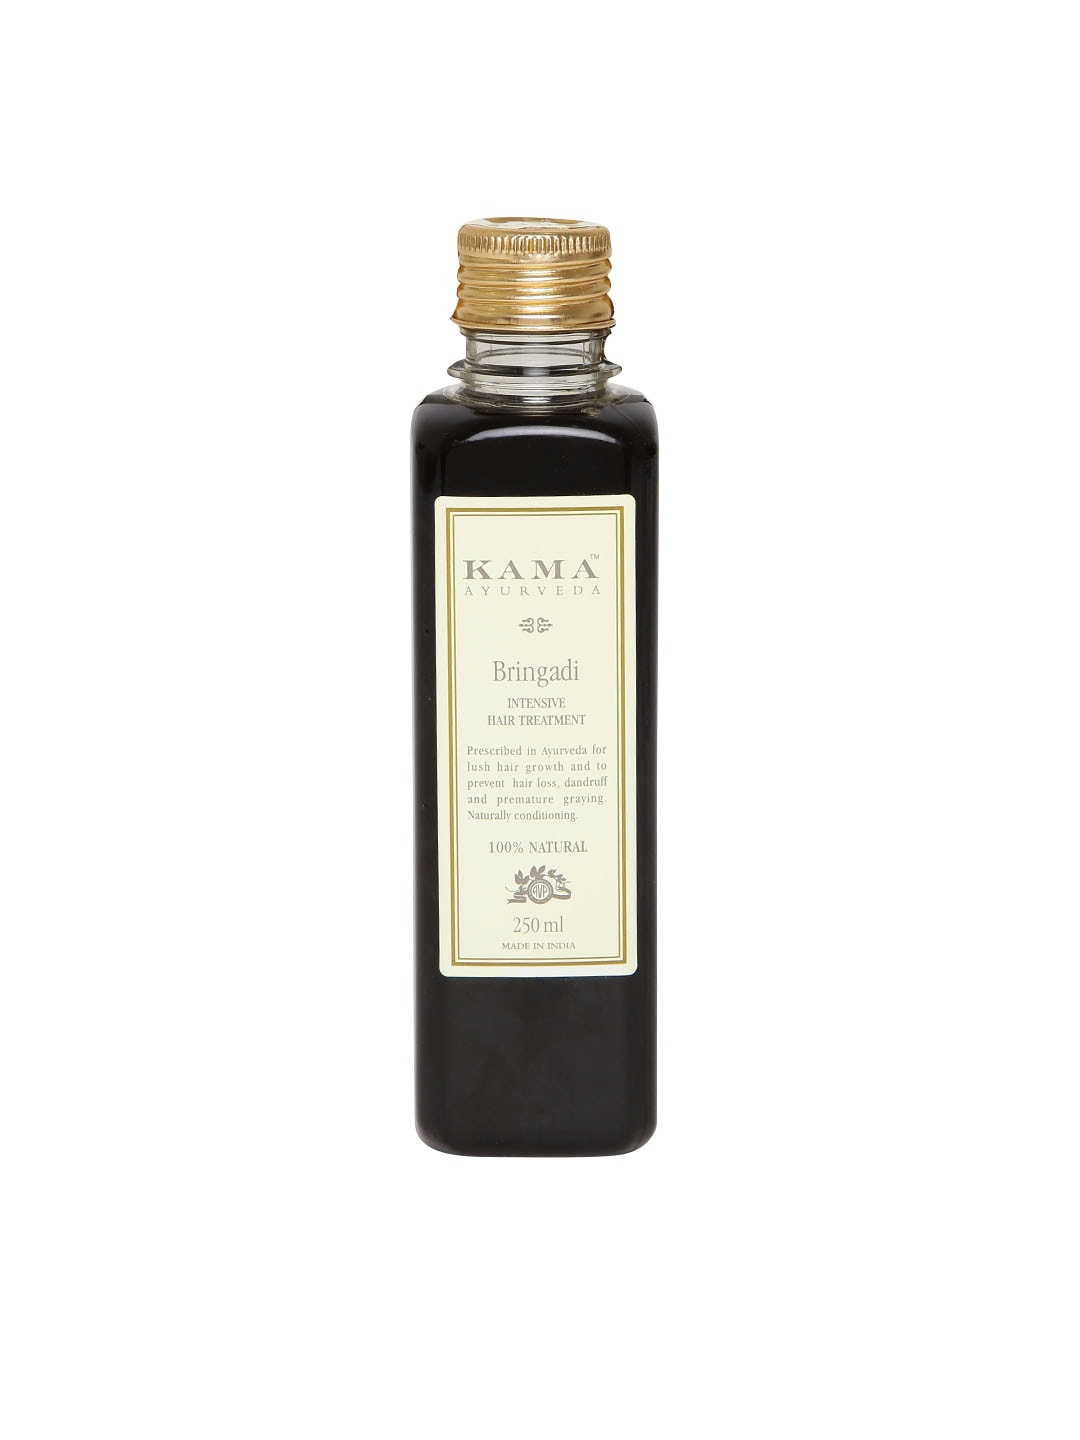 KAMA AYURVEDA Unisex Bringadi Intensive Hair Treatment Oil image